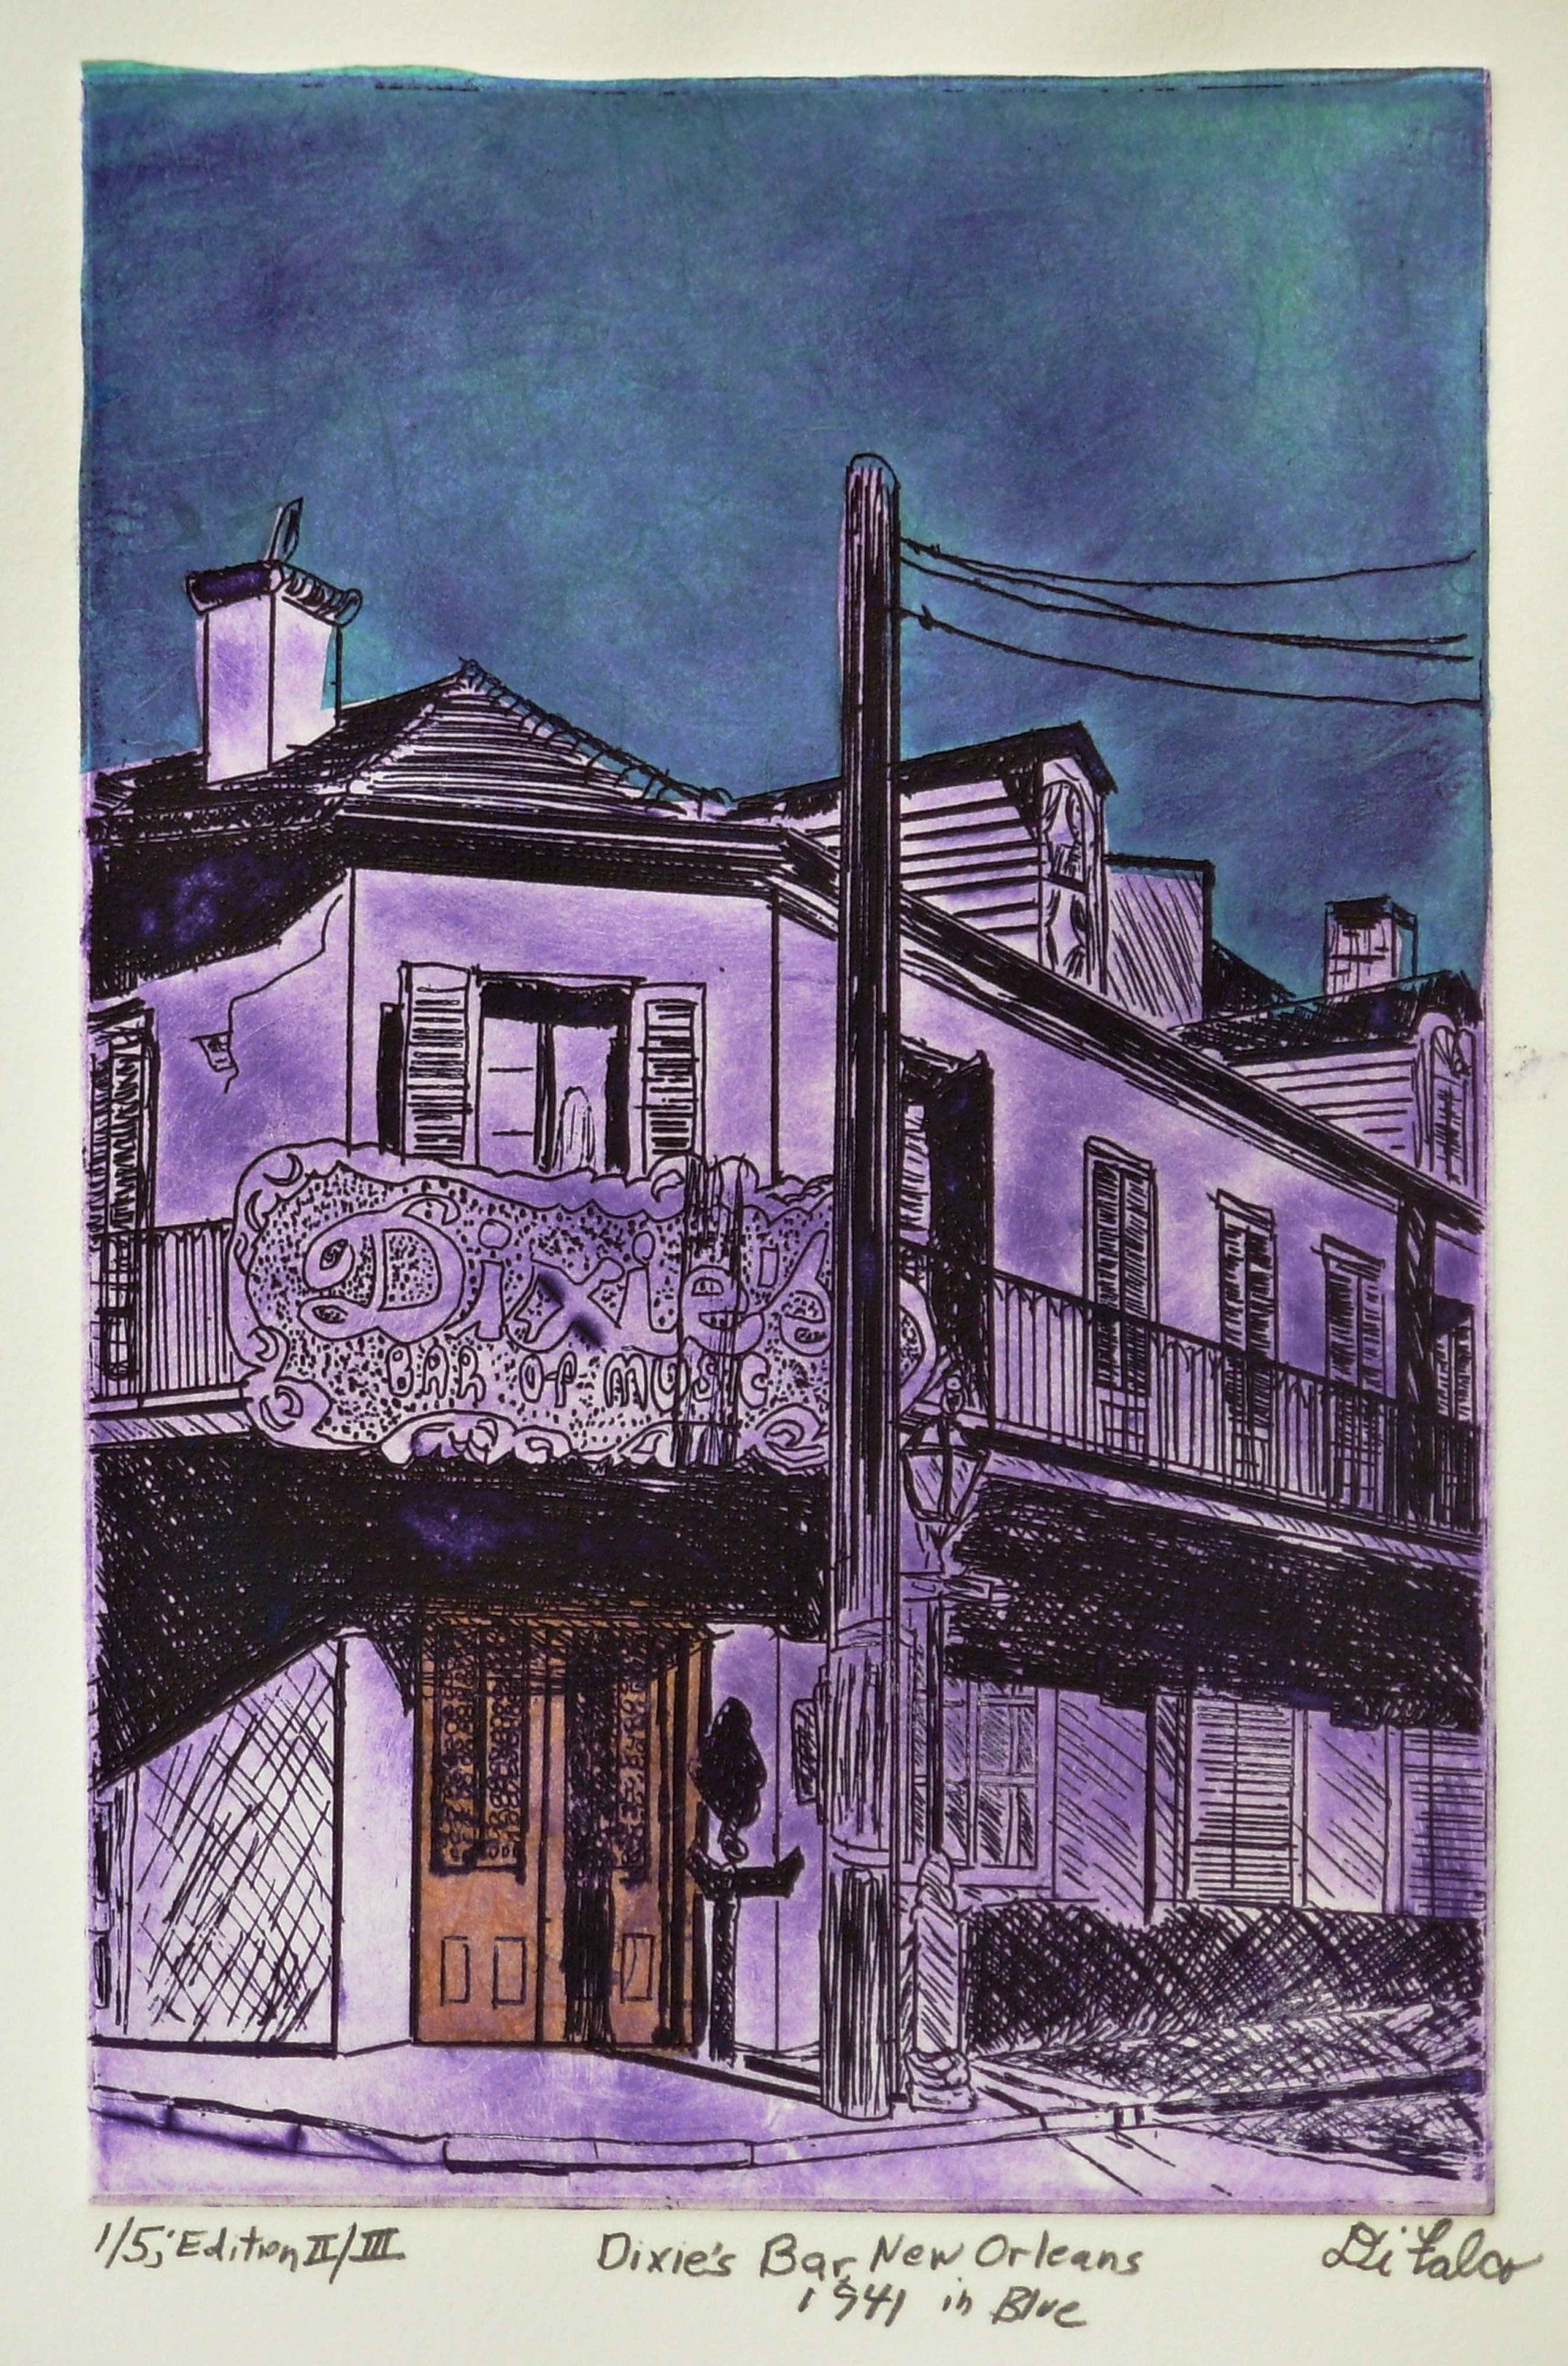 Jerry  Di Falco: 'DIXIES BAR IN NEW ORLEANS BLUE 1941', 2016 Intaglio, Music. This etching, which is part of my New Orleans Collection, shows the building at 701 Bourbon Street at the intersection of St. Peters. The structure is also featured in another DiFalco etching that shows the building when it functioned in the 1930s as the POM POM BAYOU GROCERY.  This zinc ...